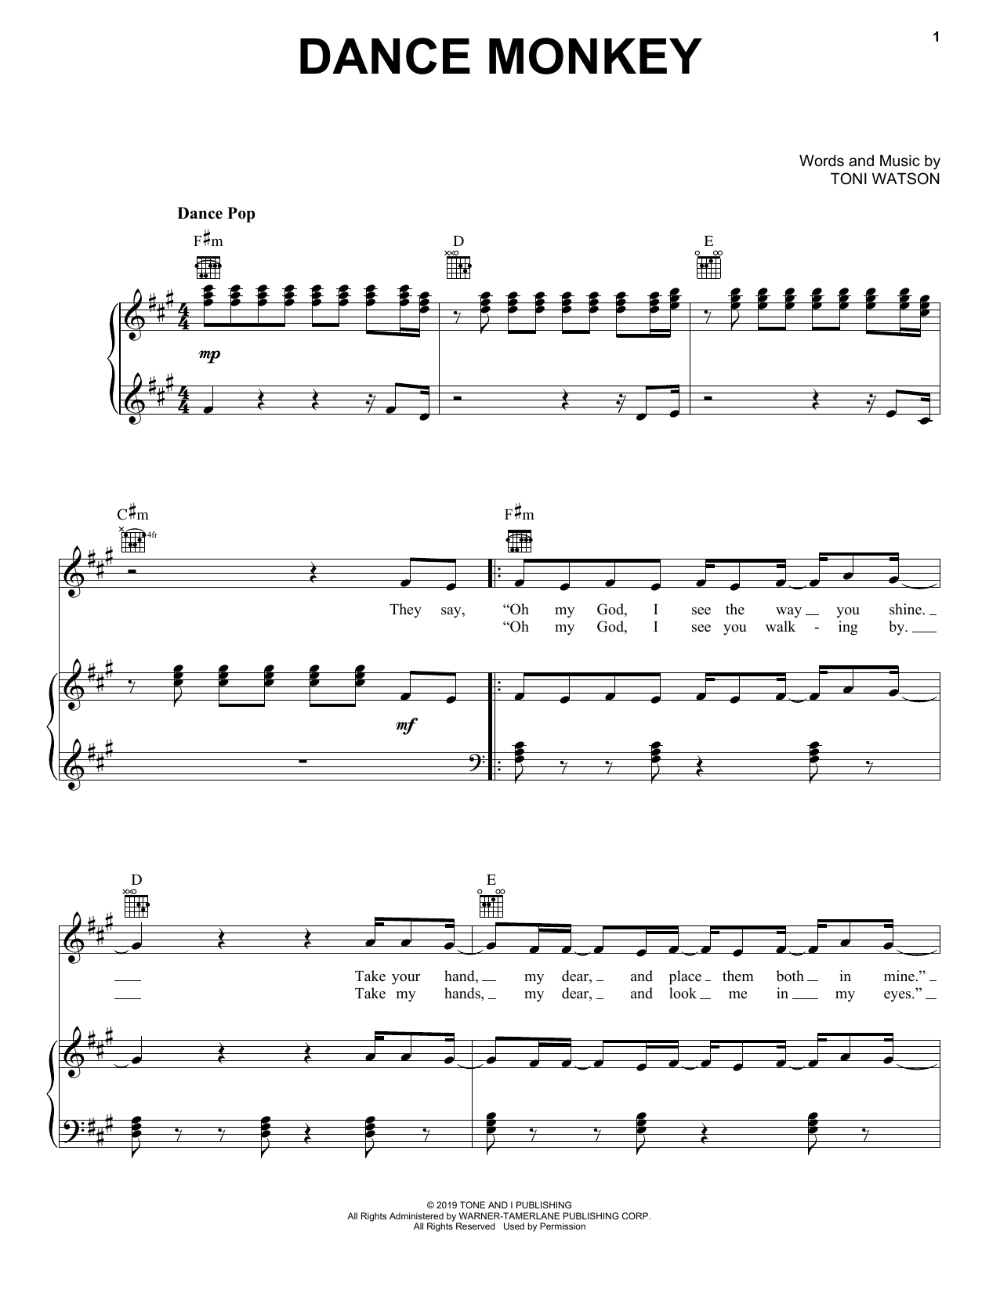 Tones And I Dance Monkey Sheet Music Notes Chords Score Download Printable Pdf Piano Sheet Music Letters Violin Sheet Music Piano Sheet Music Free